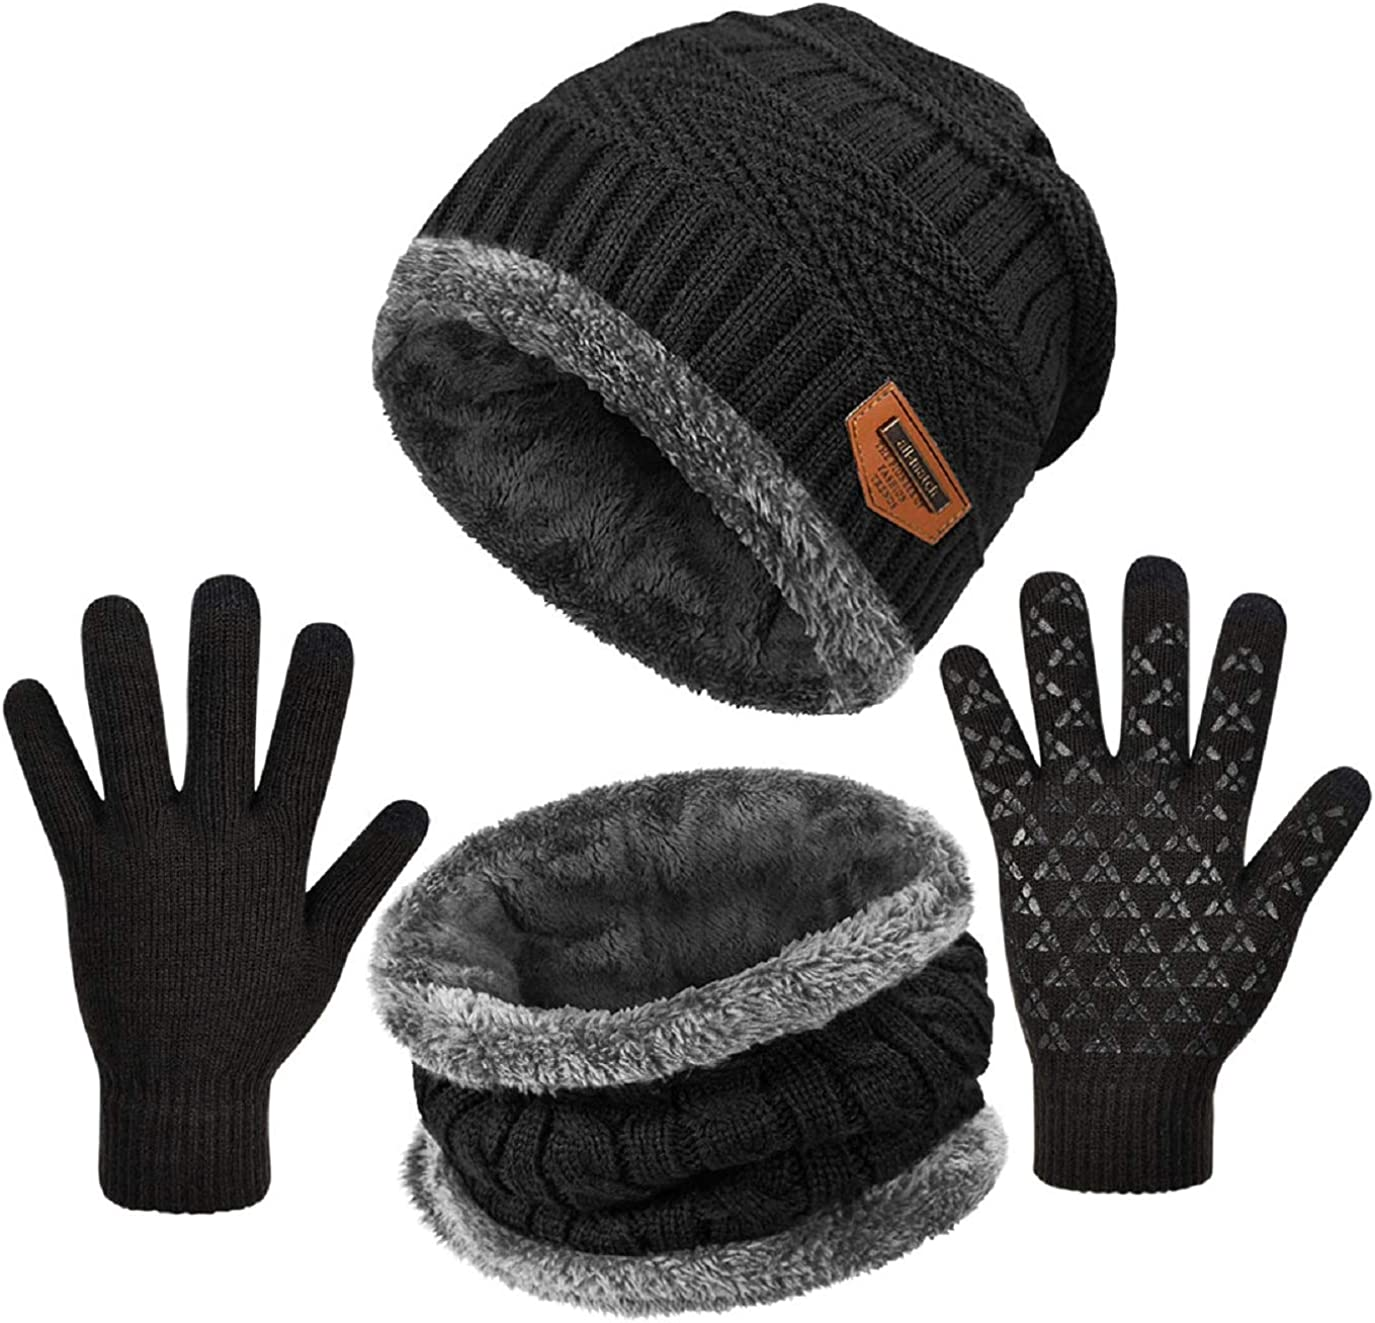 GIKPAL Winter Hat Scarf Gloves Set Fleece Lined Warm Beanie Hat Soft Knitted Neck Warmer Touchscreen Thermal Gloves for Men Women Outdoor Sports Grey